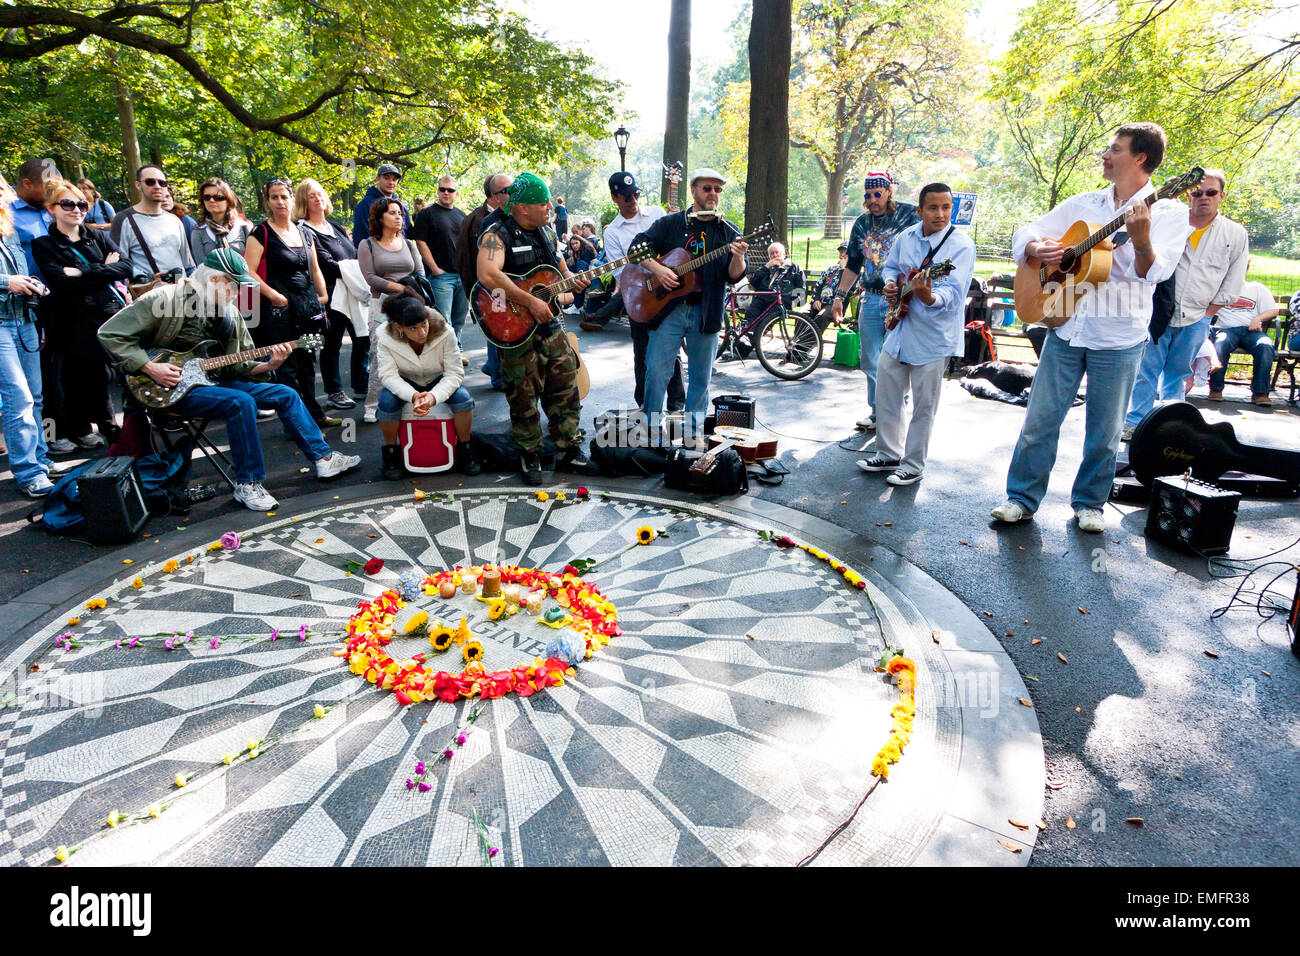 Fans gather around the Imagine memorial on John Lennon's birthday, Strawberry Fields, Central Park, New York, - Stock Image